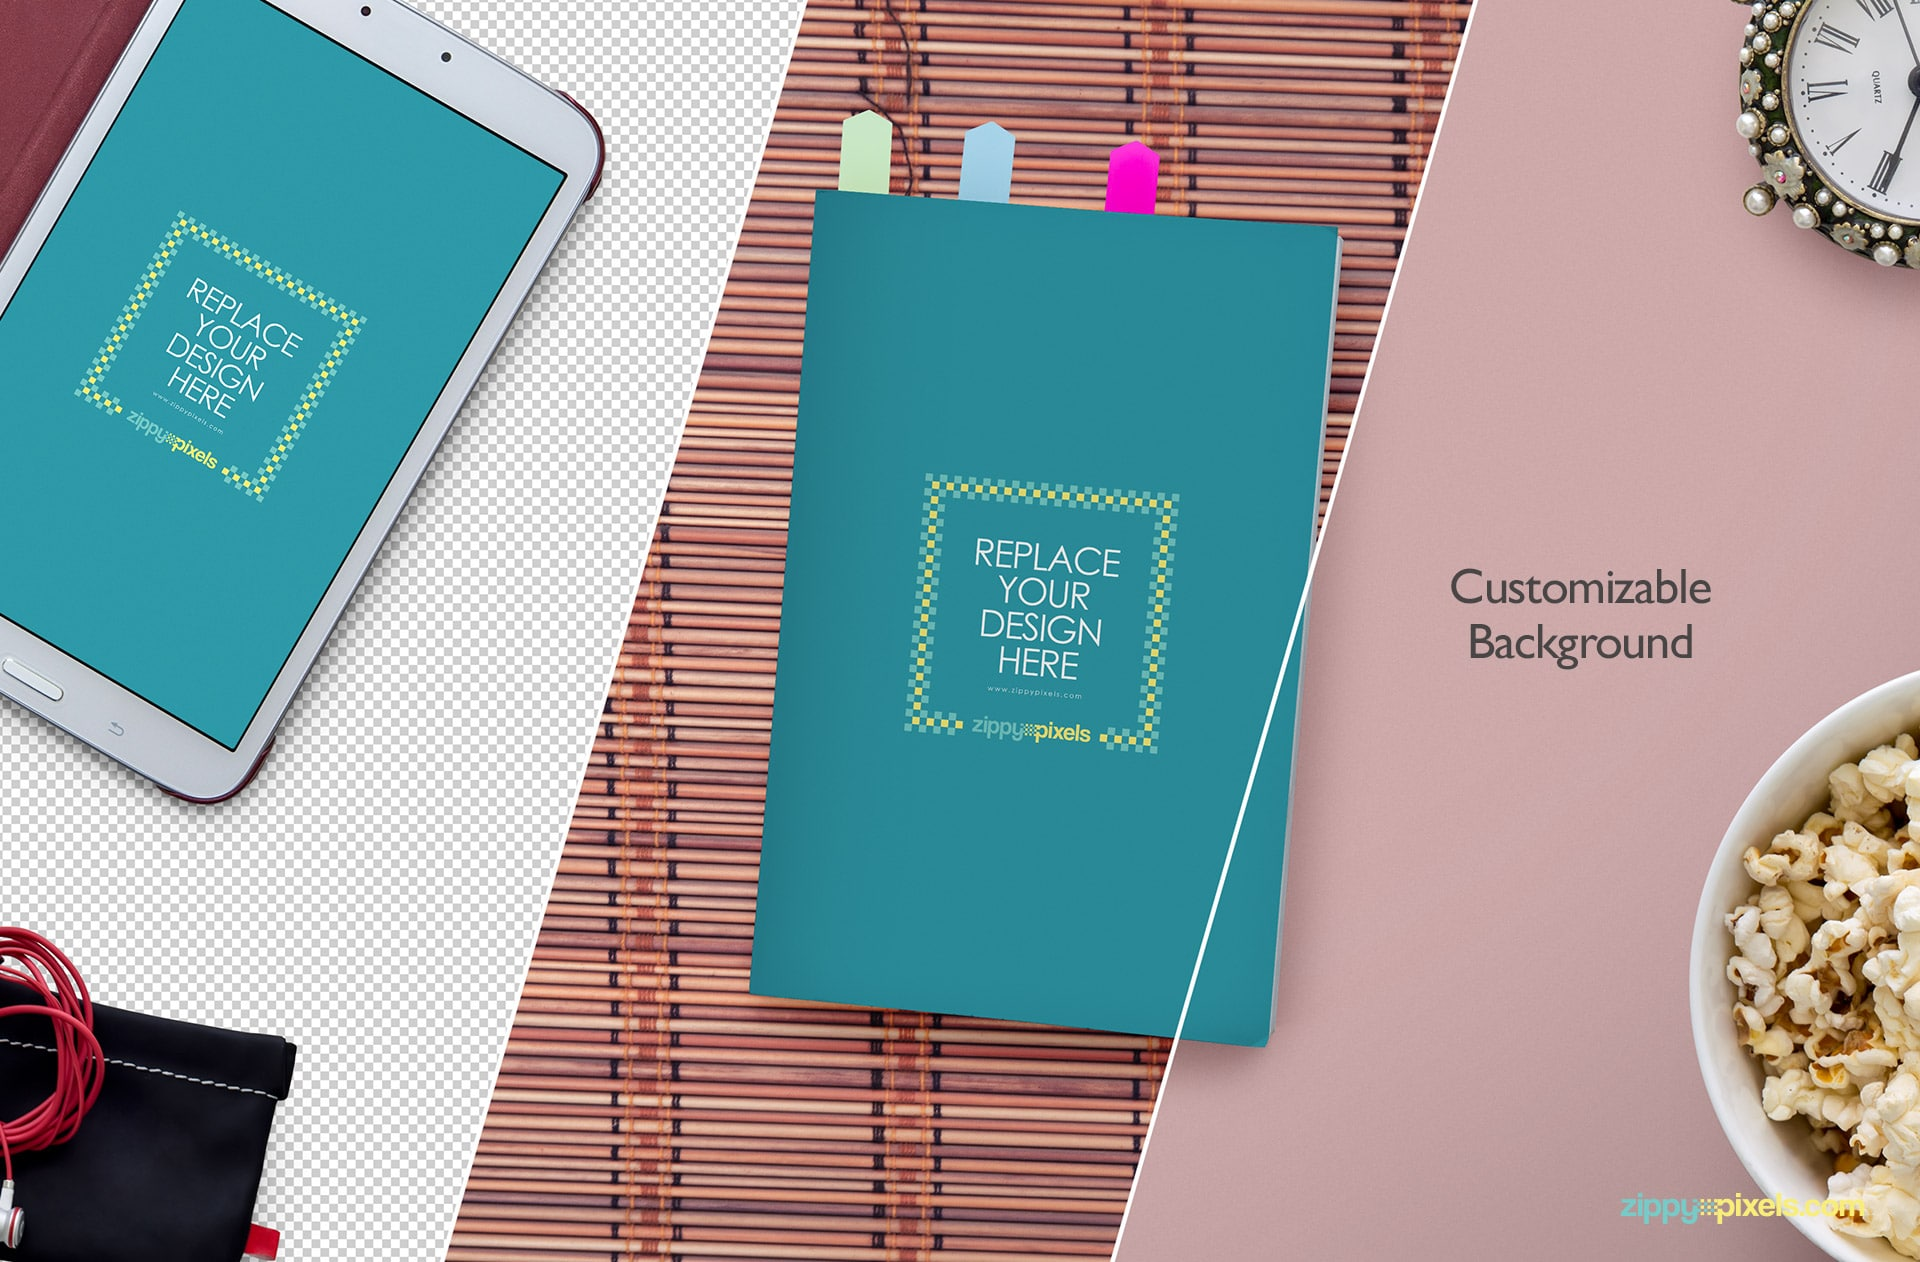 Customizable-Book-Cover-Mockups-Customizable-Backgrounds-824x542